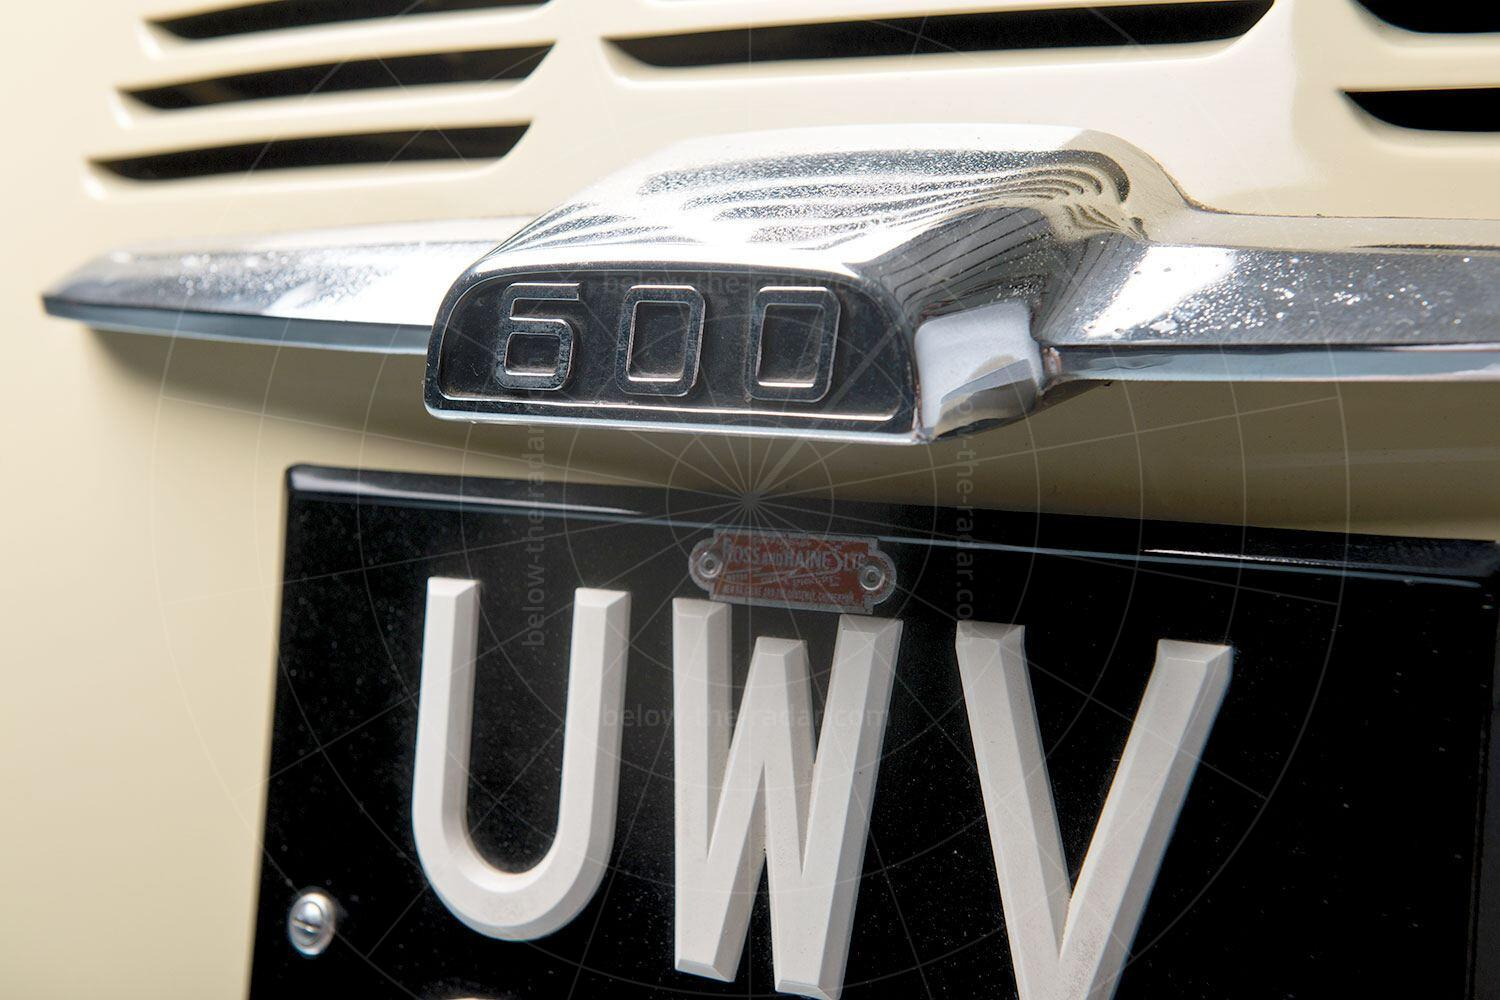 BMW 600 badge Pic: RM Sotheby's | BMW 600 badge